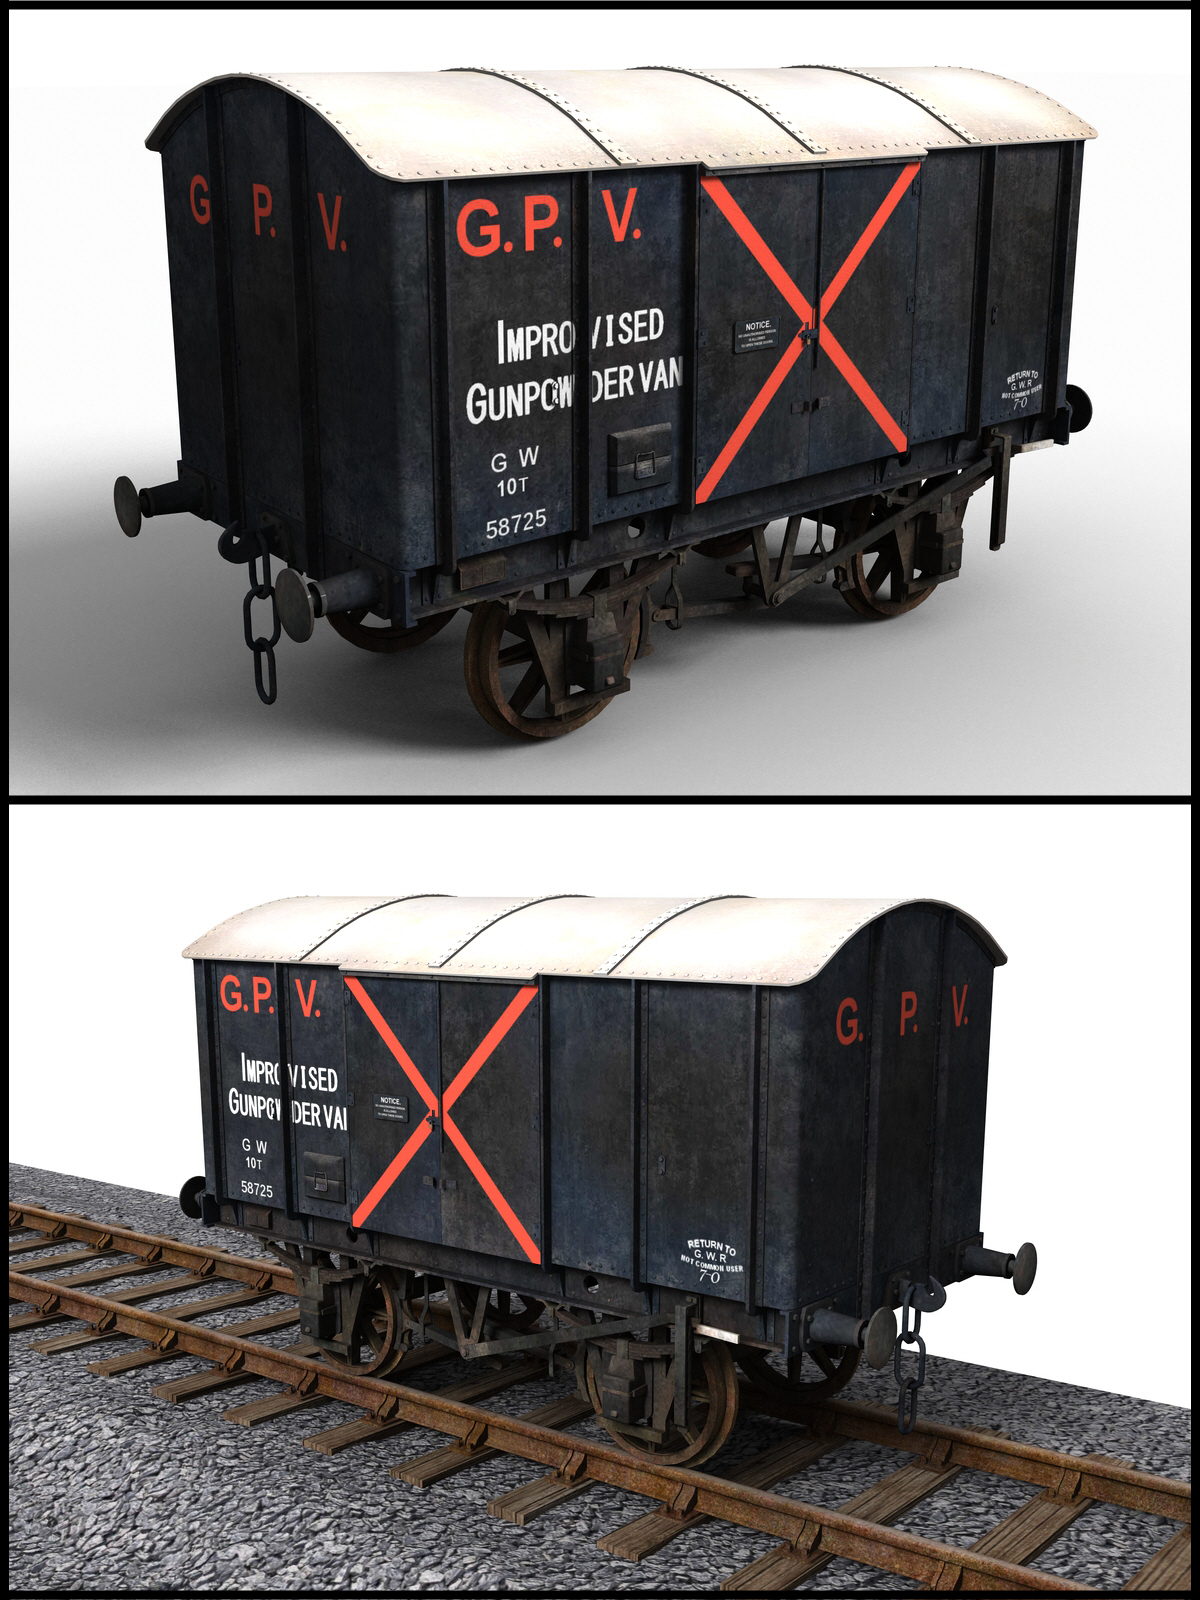 GWR Gunpowder Van by DryJack